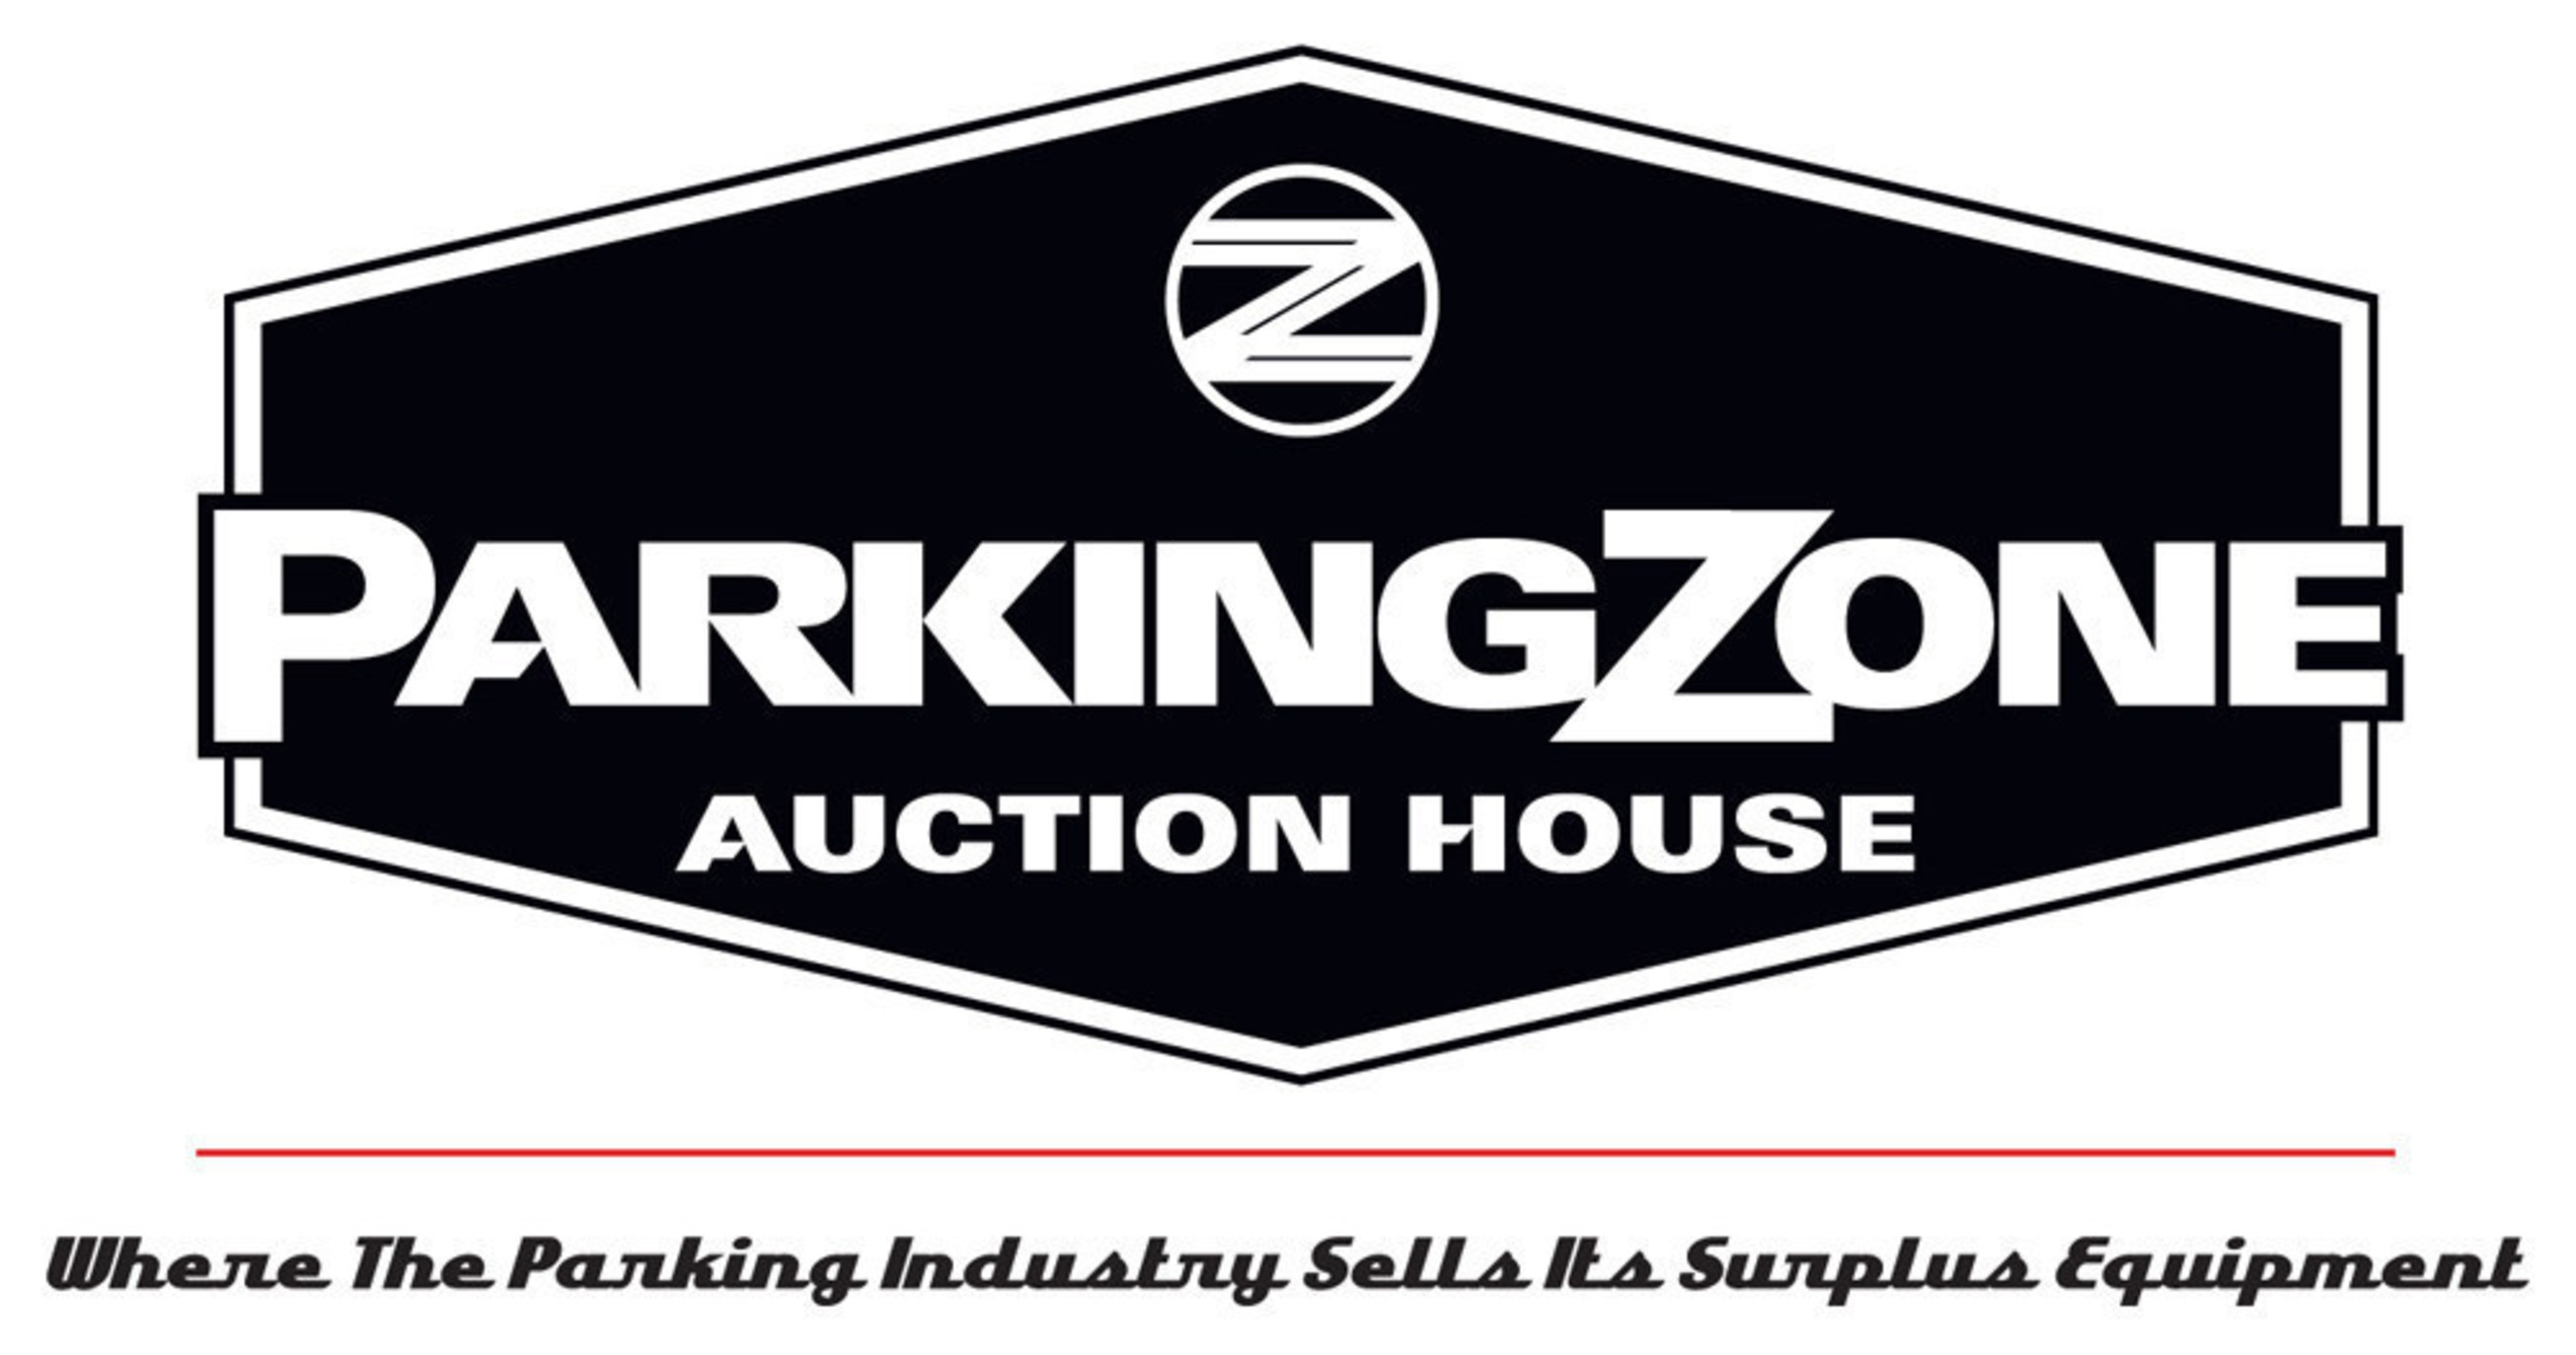 ParkingZone Auction House Launches The Only Internet-Based, Surplus Parking Equipment Auction Marketplace